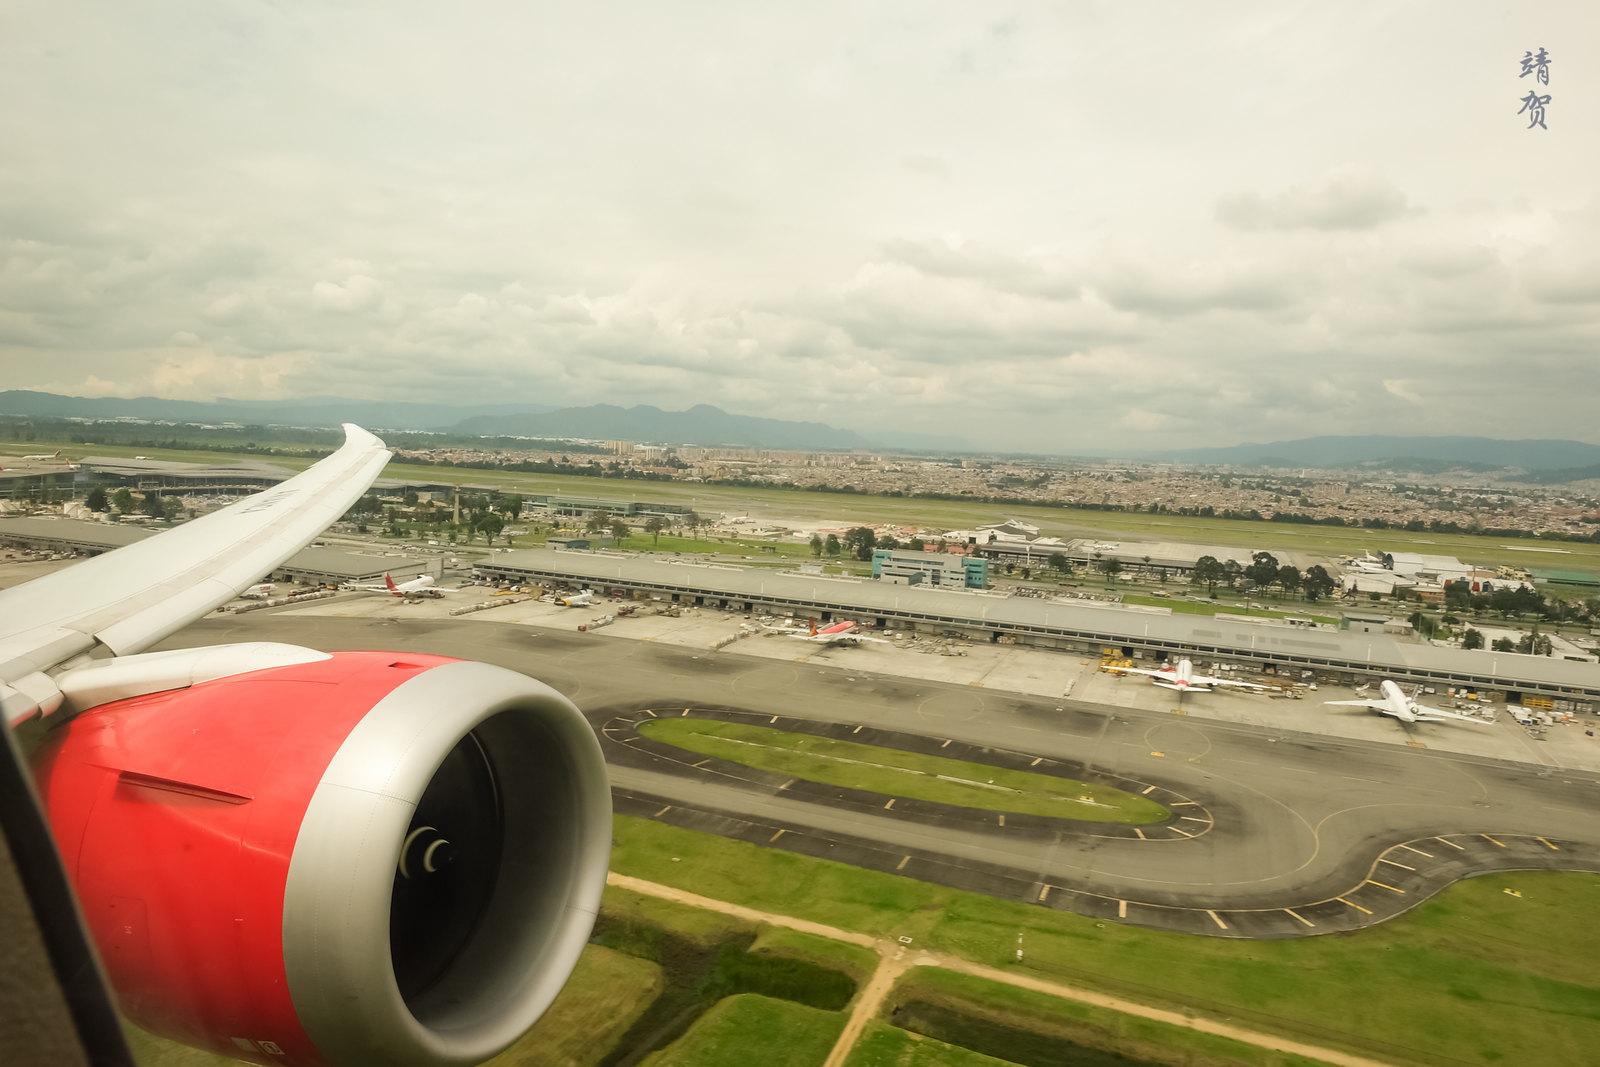 Take-off from BOG